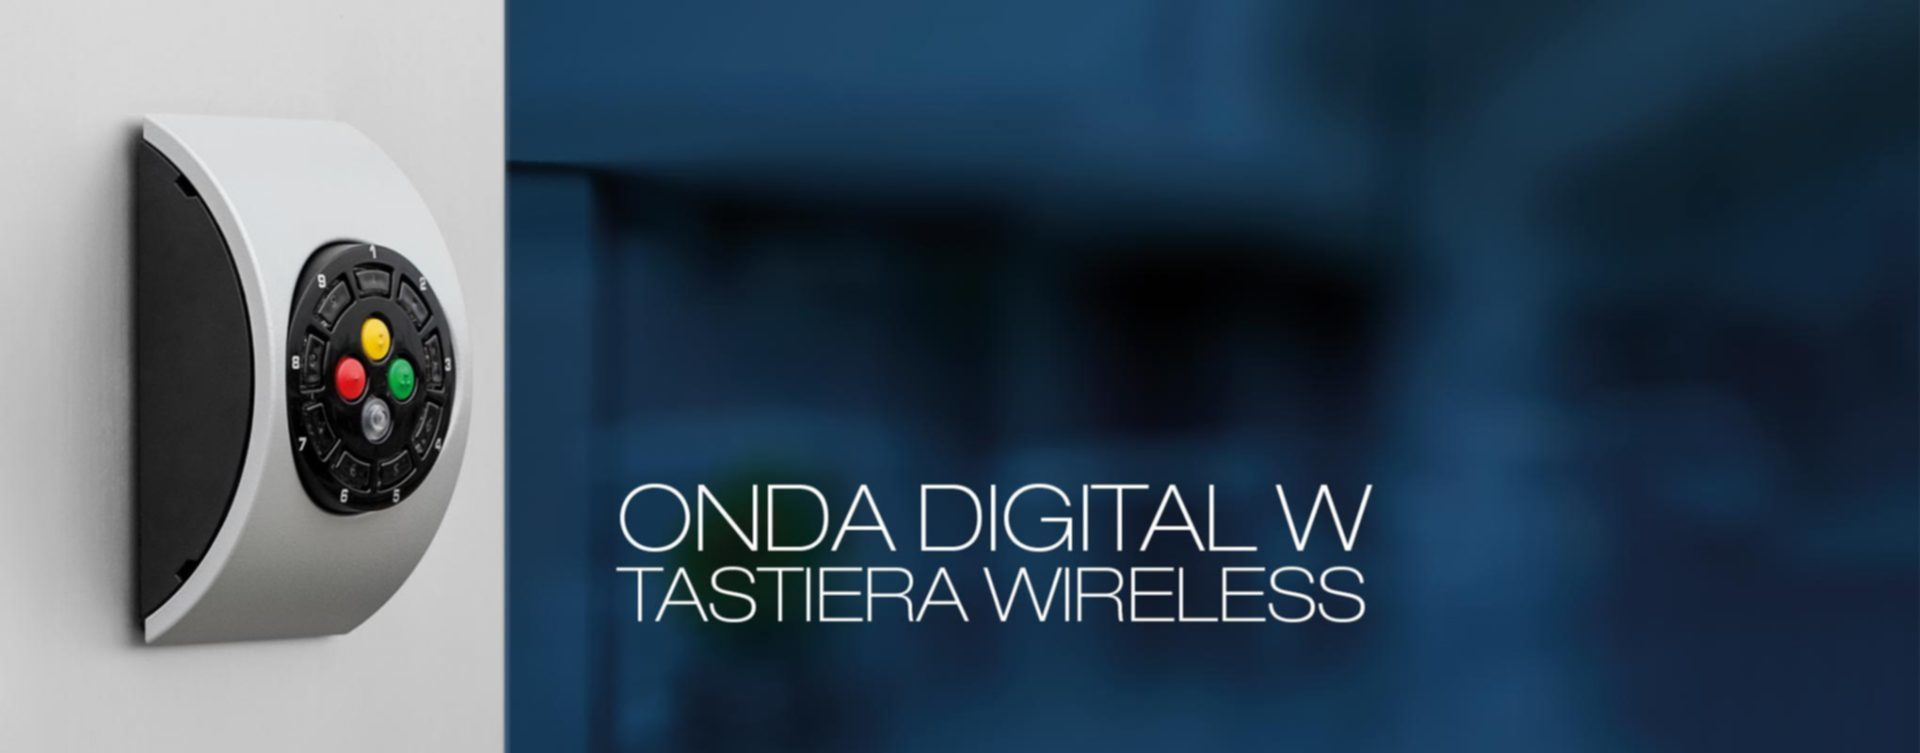 Onda Digital Wireless